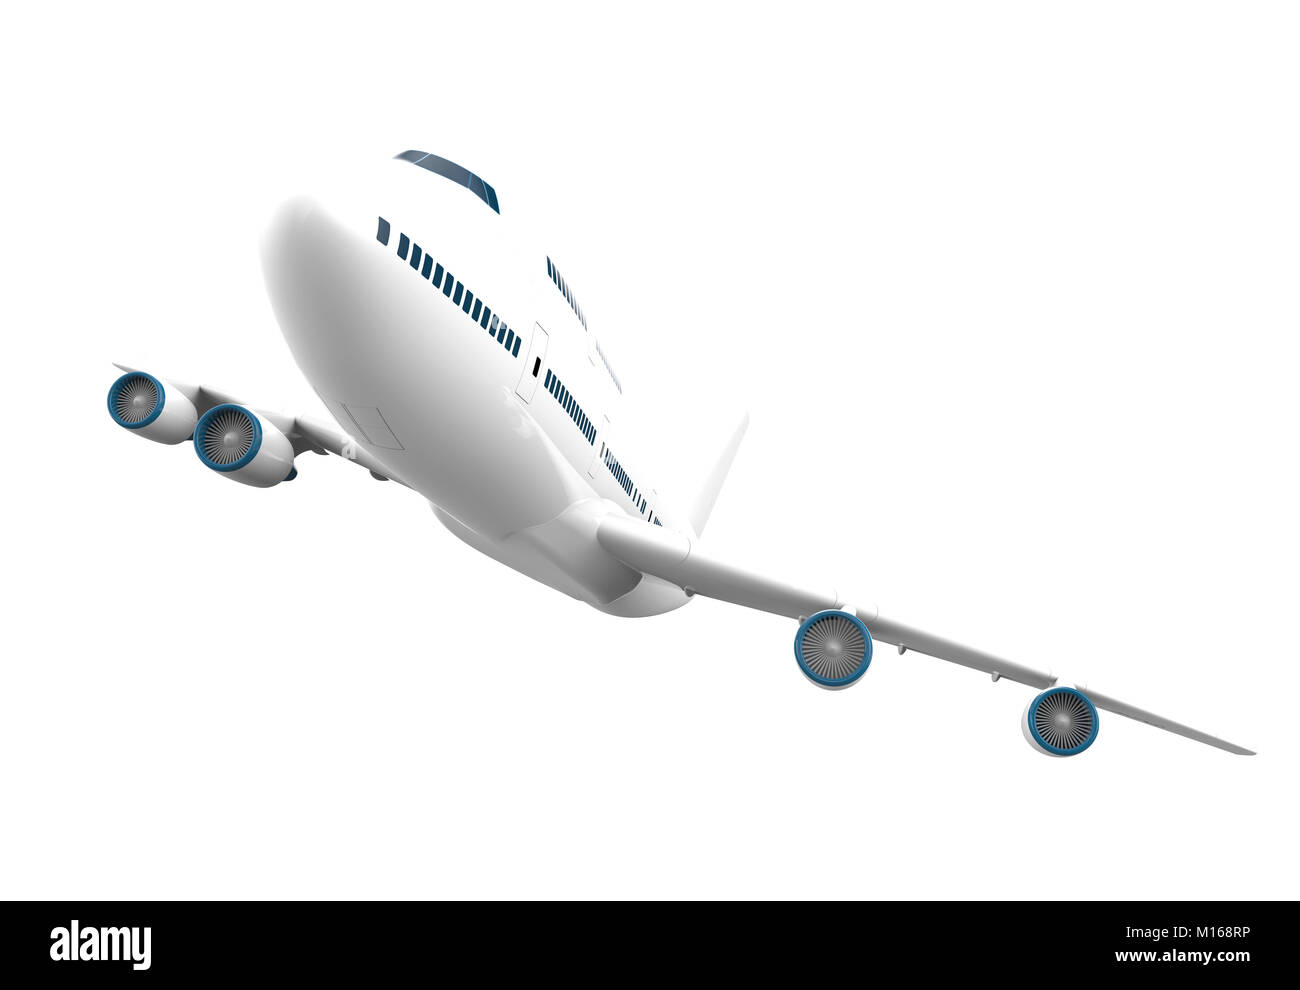 Big airplane isolated on a white background: 3D illustration - Stock Image